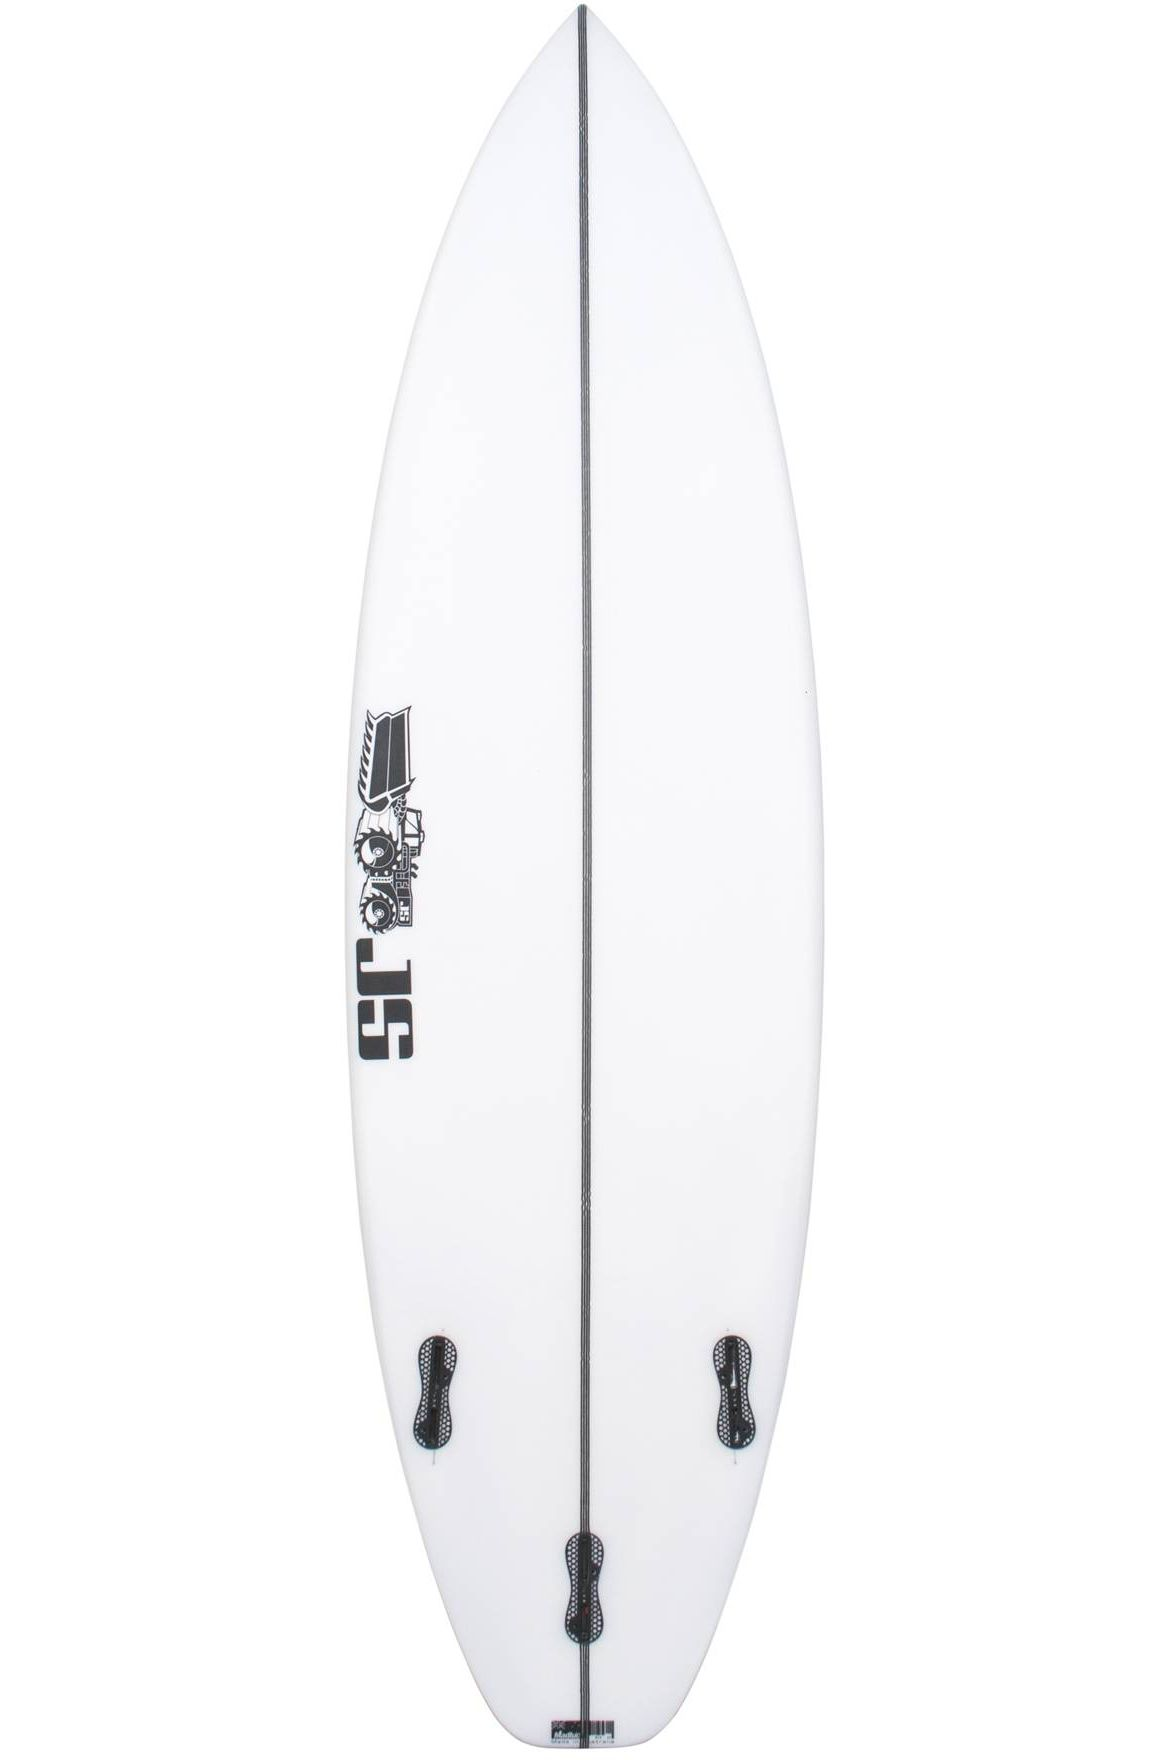 Prancha Surf JS MONSTA 8 6'0 Squash Tail - White FCS II 6ft0